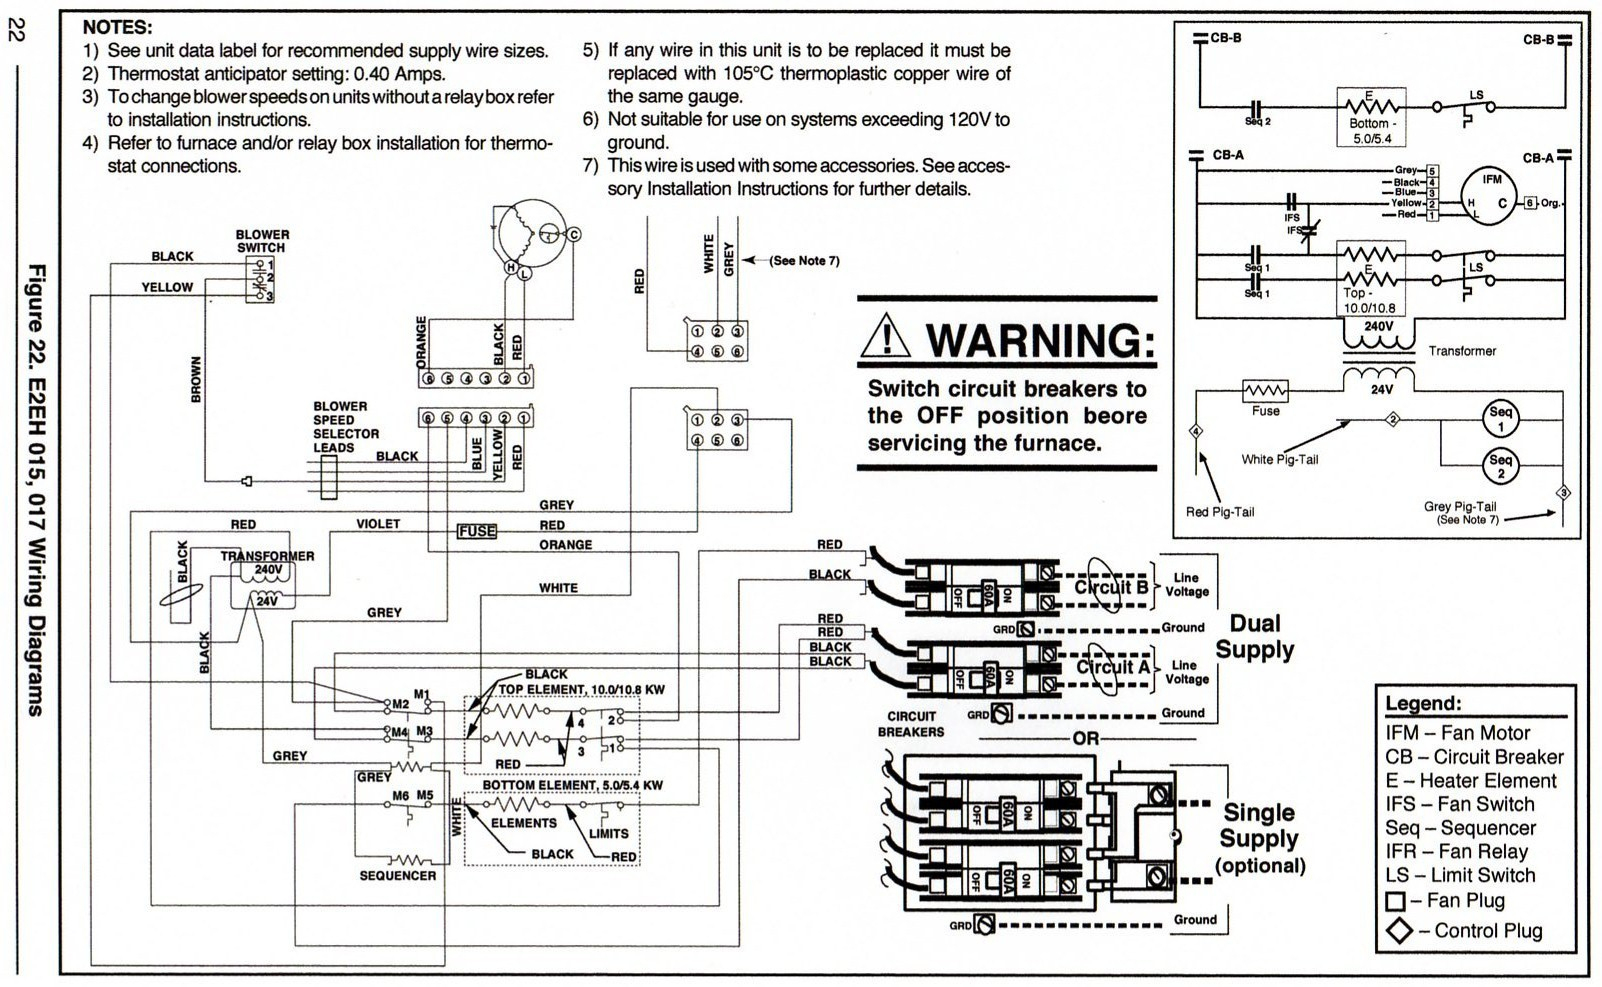 Sequencer Wiring Diagram | Wiring Diagram - Electric Furnace Sequencer Wiring Diagram